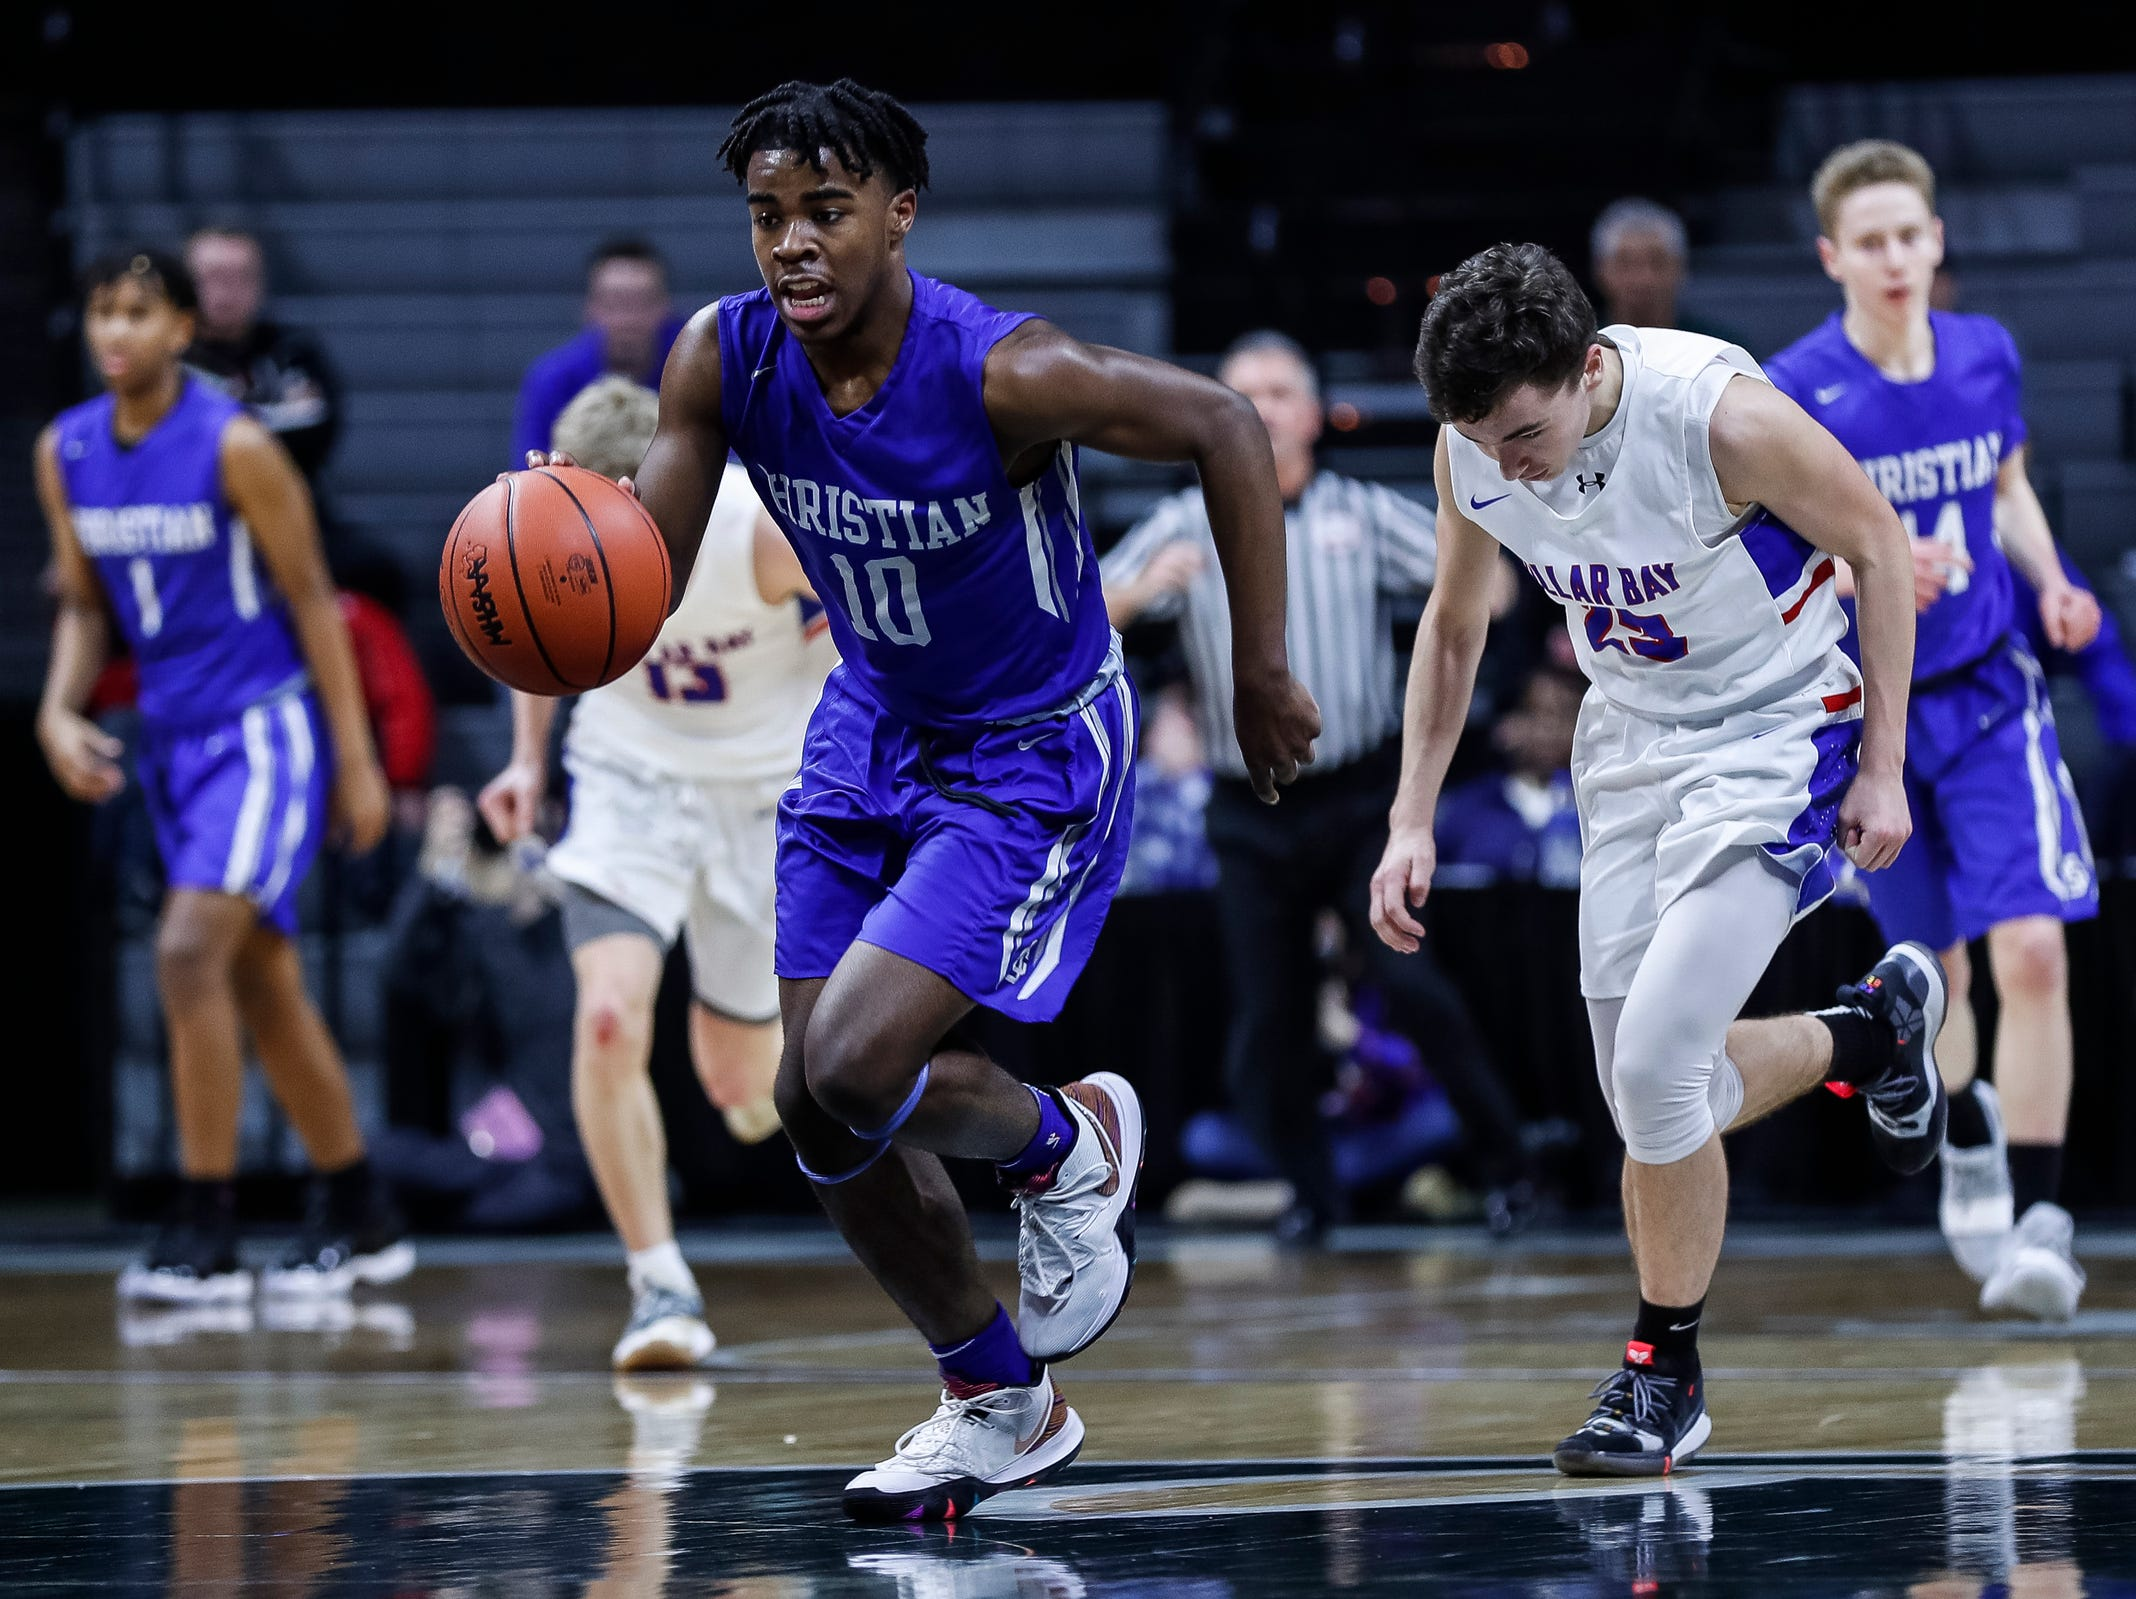 Southfield Christian's Jon Sanders (10) dribbles against Dollar Bay during the first half of MHSAA Division 4 semifinal at the Breslin Center in East Lansing, Thursday, March 14, 2019.